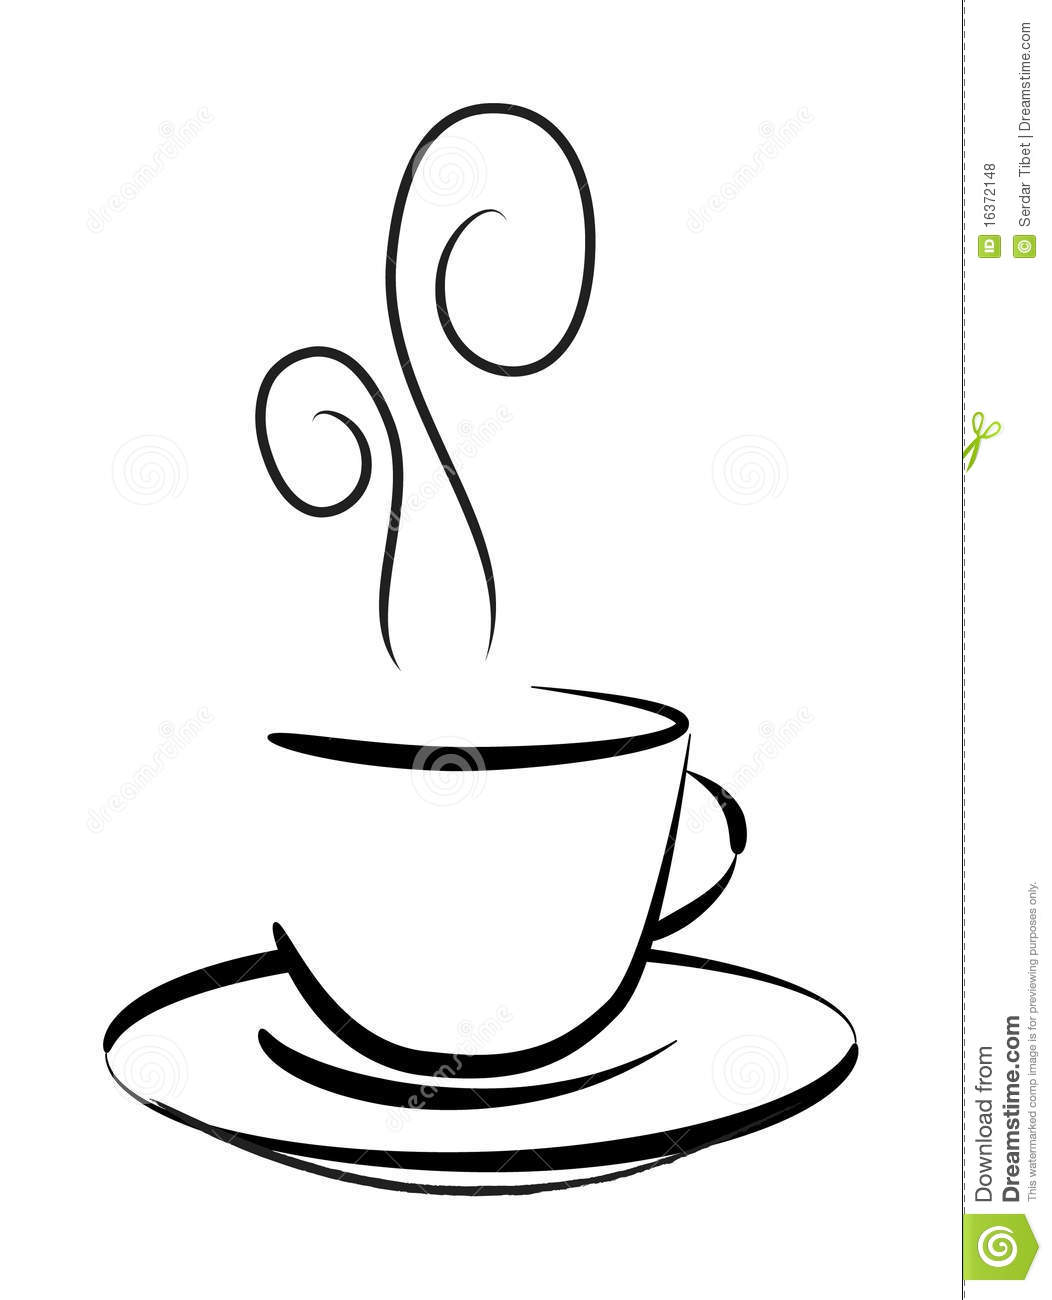 coffee-mug-vector-drawing-16372148.jpg